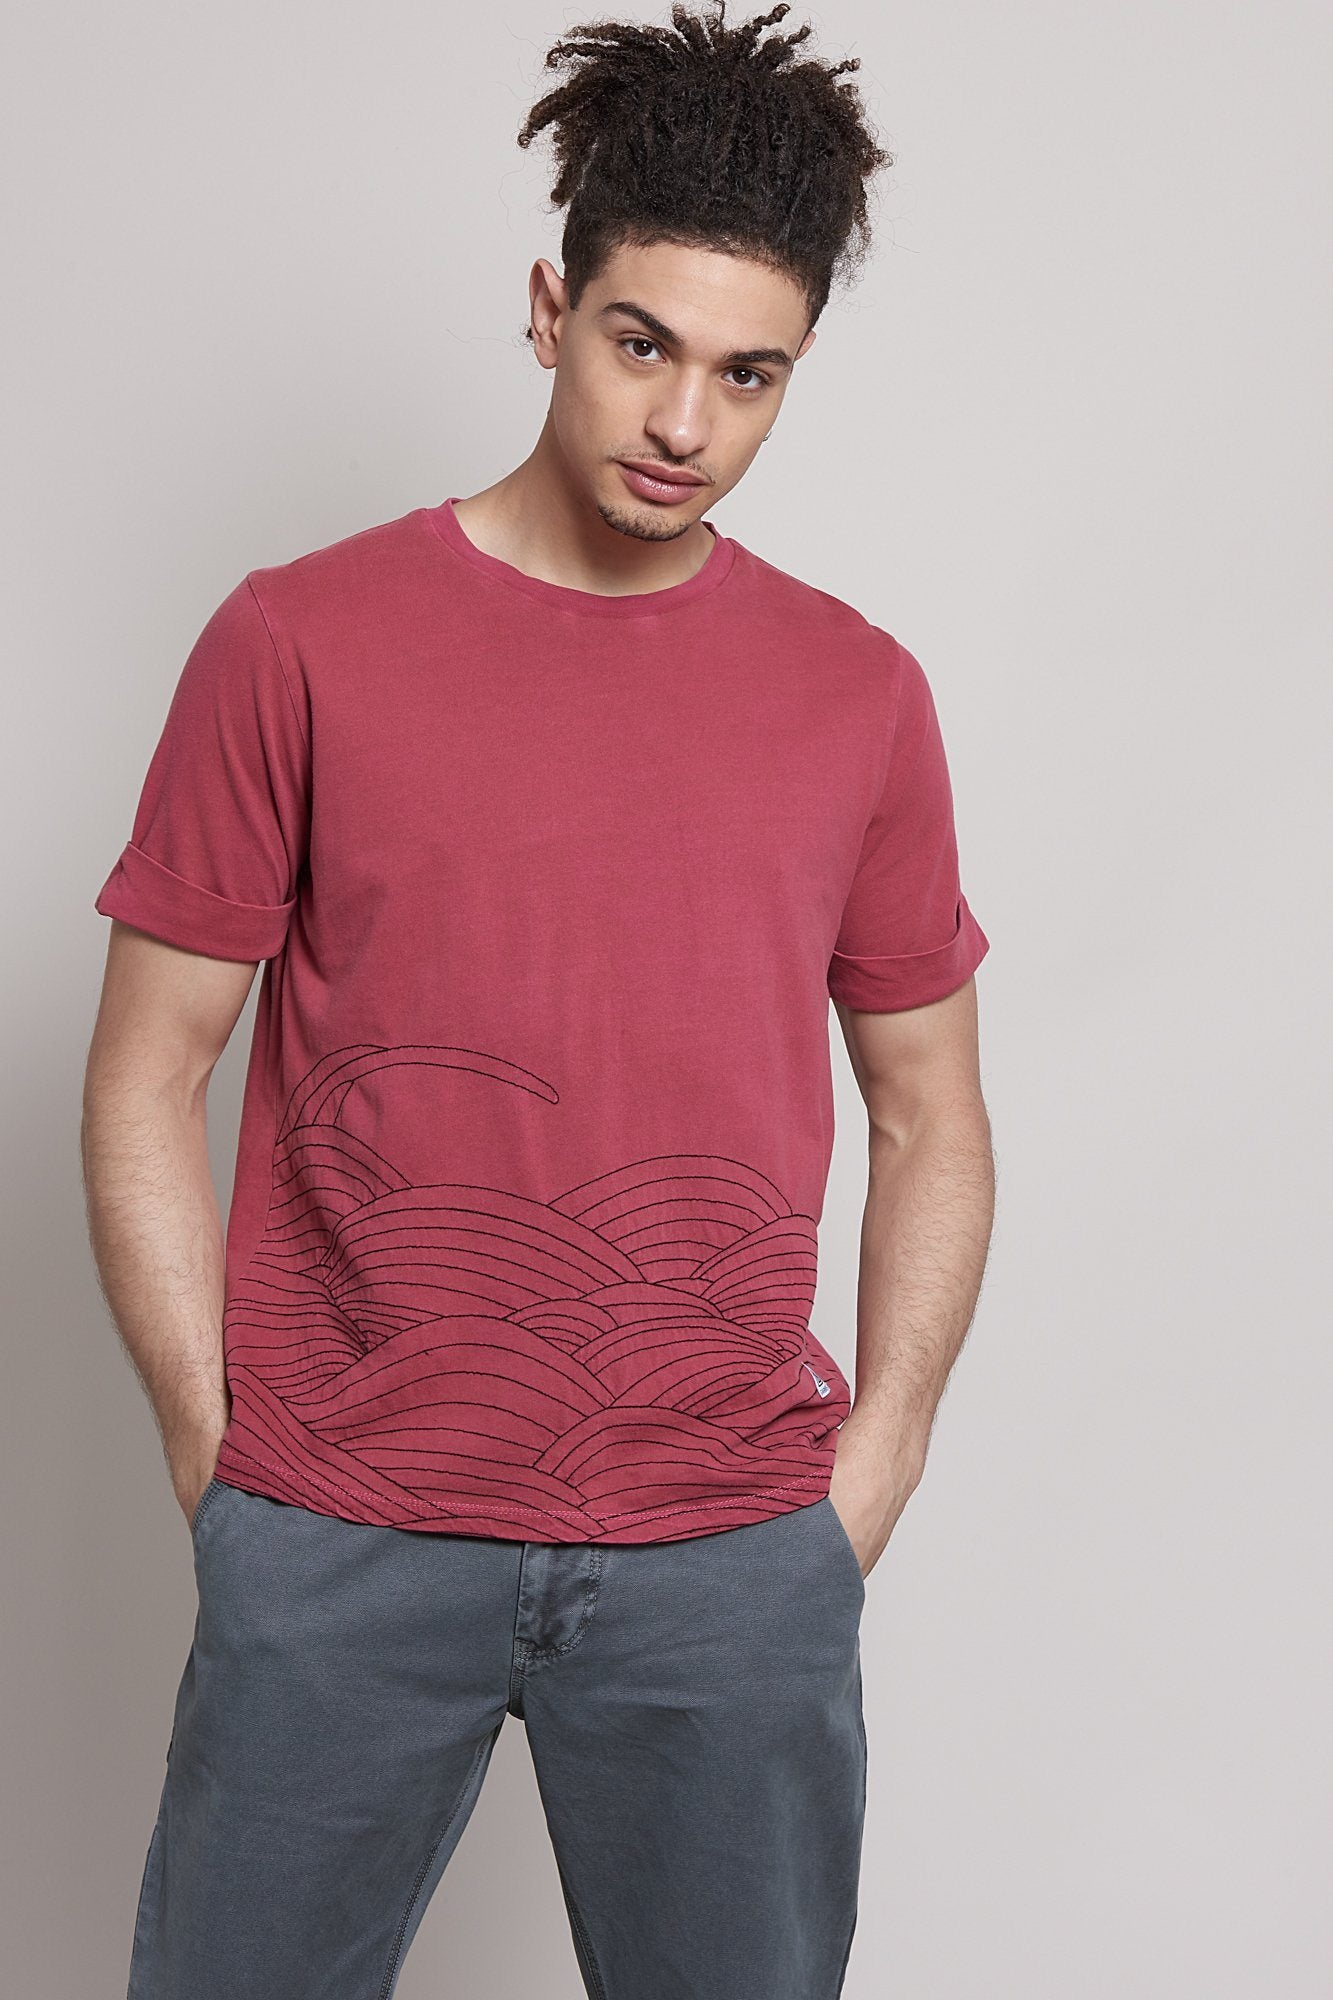 SASHIKO Embroidery Organic Cotton T-Shirt Burnt Red - Komodo Fashion